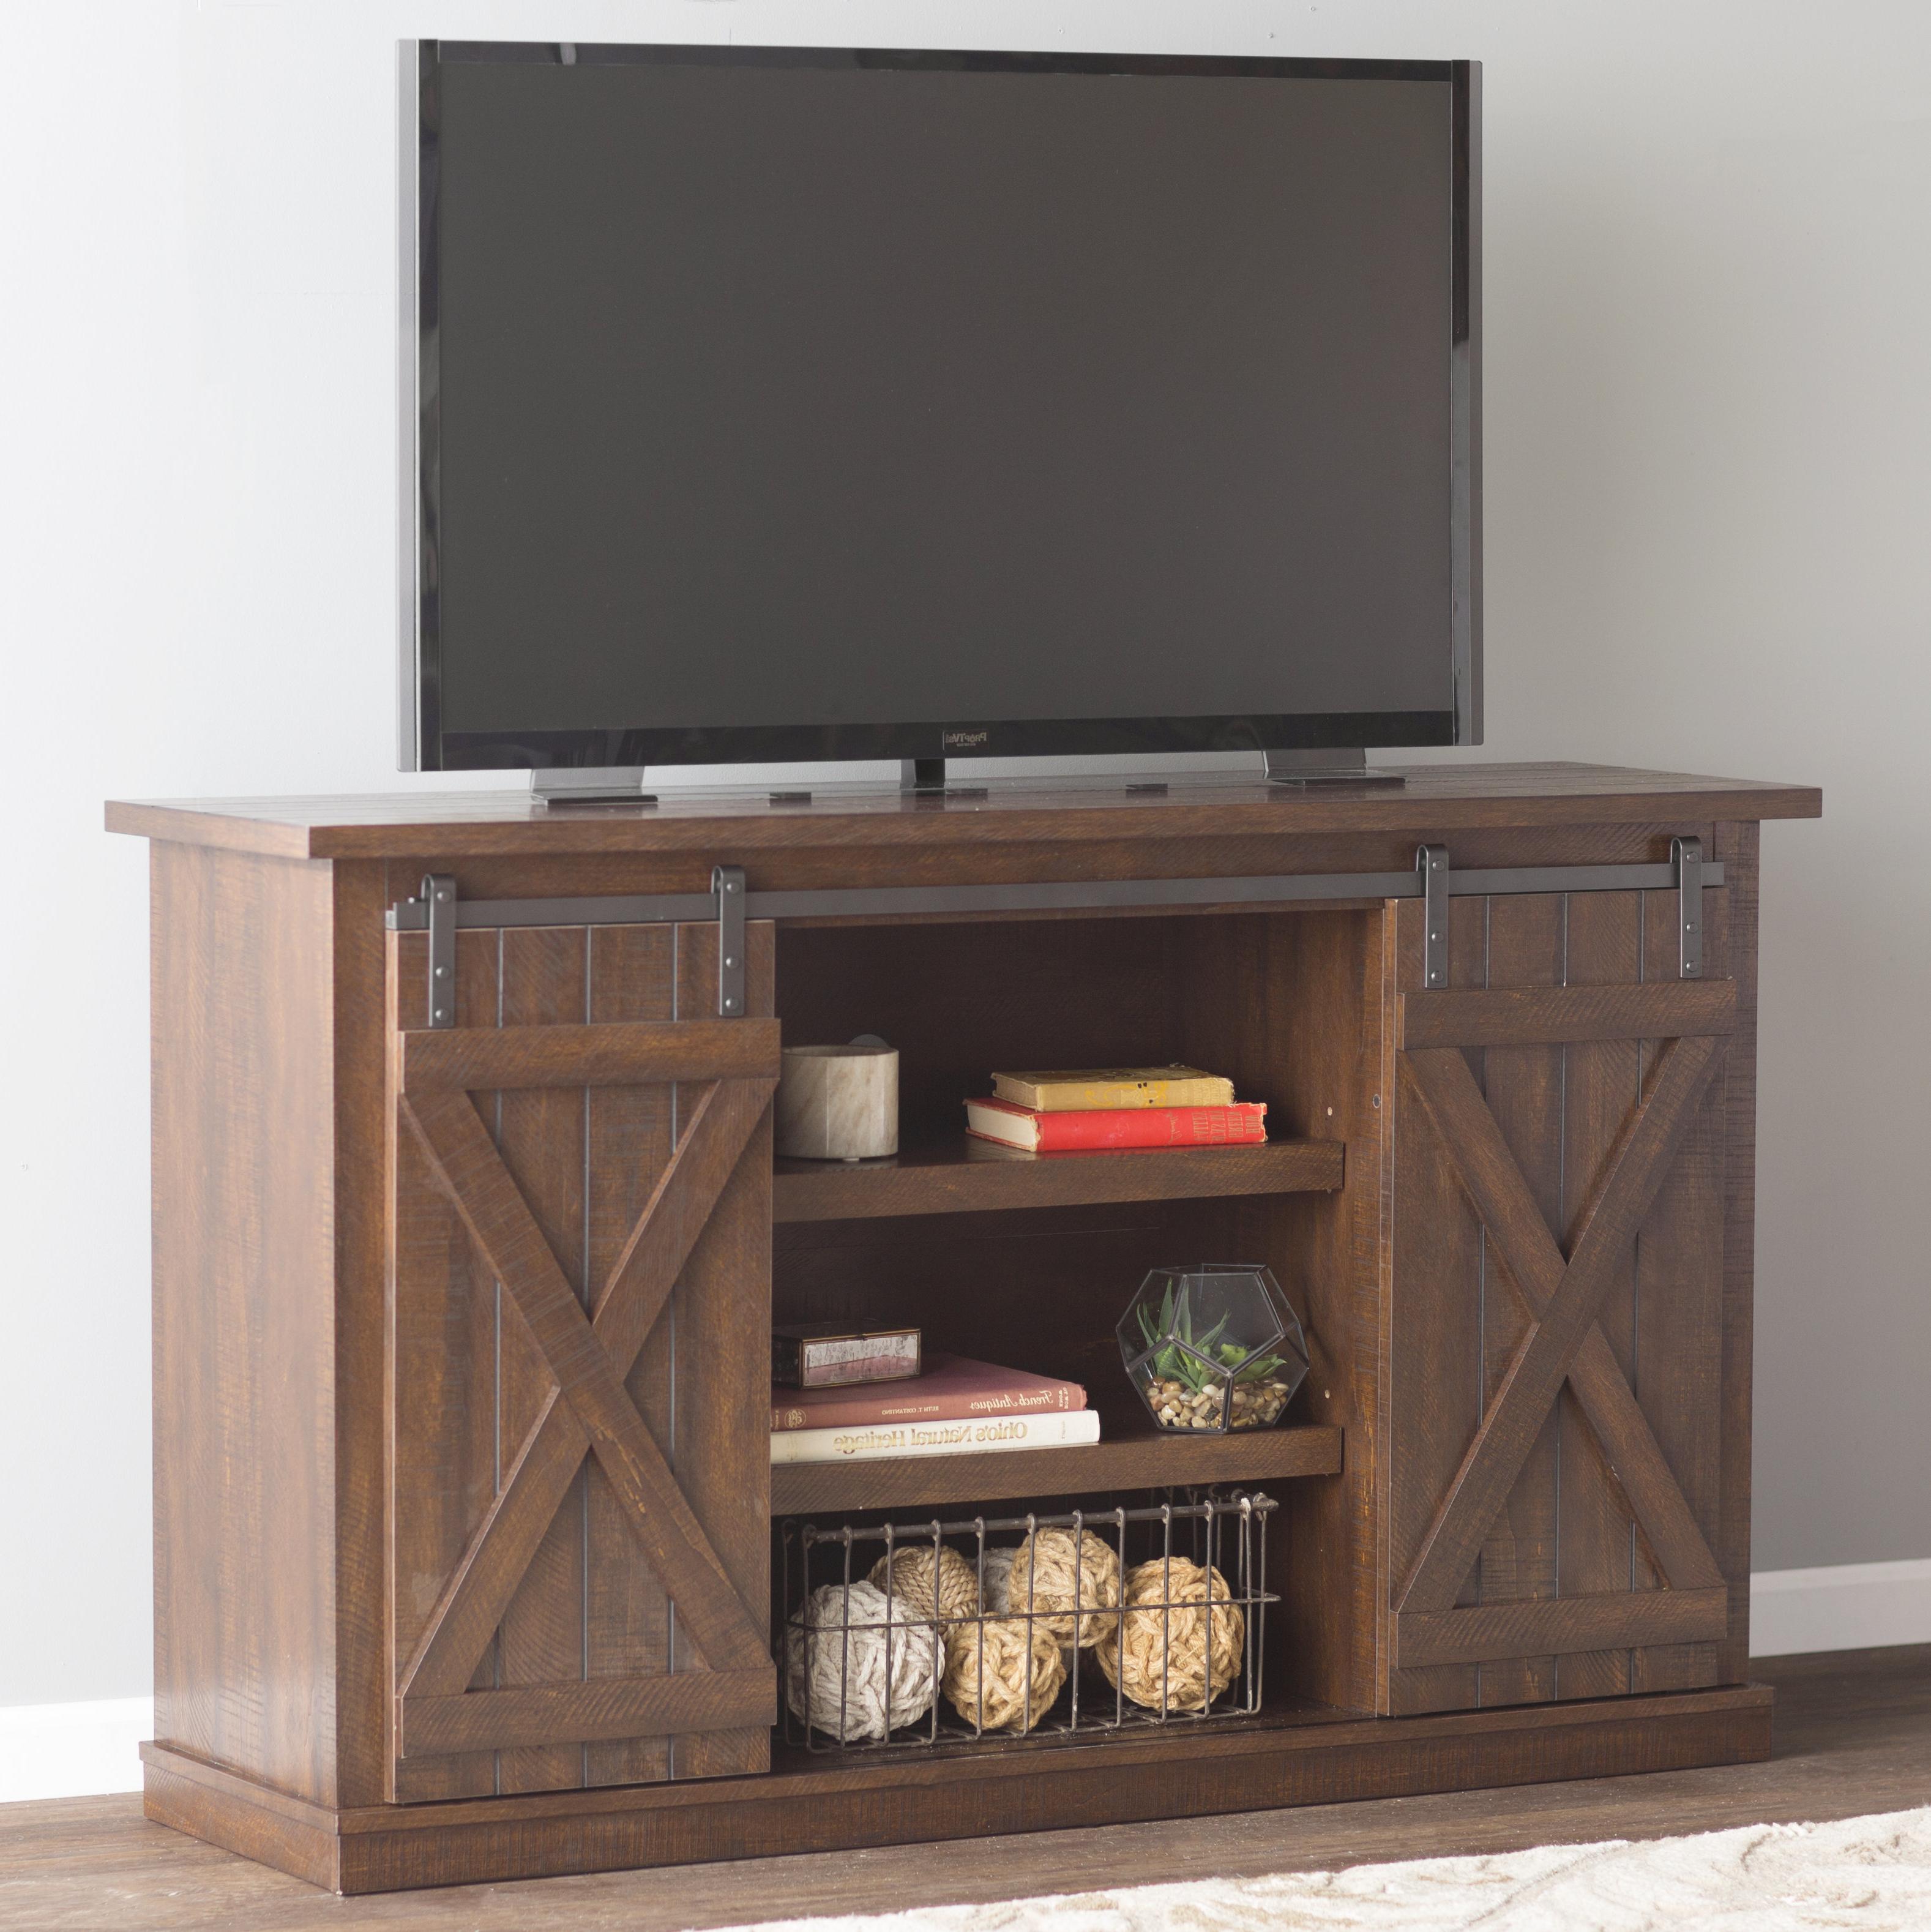 2017 Tv Stands You'll Love (View 15 of 20)